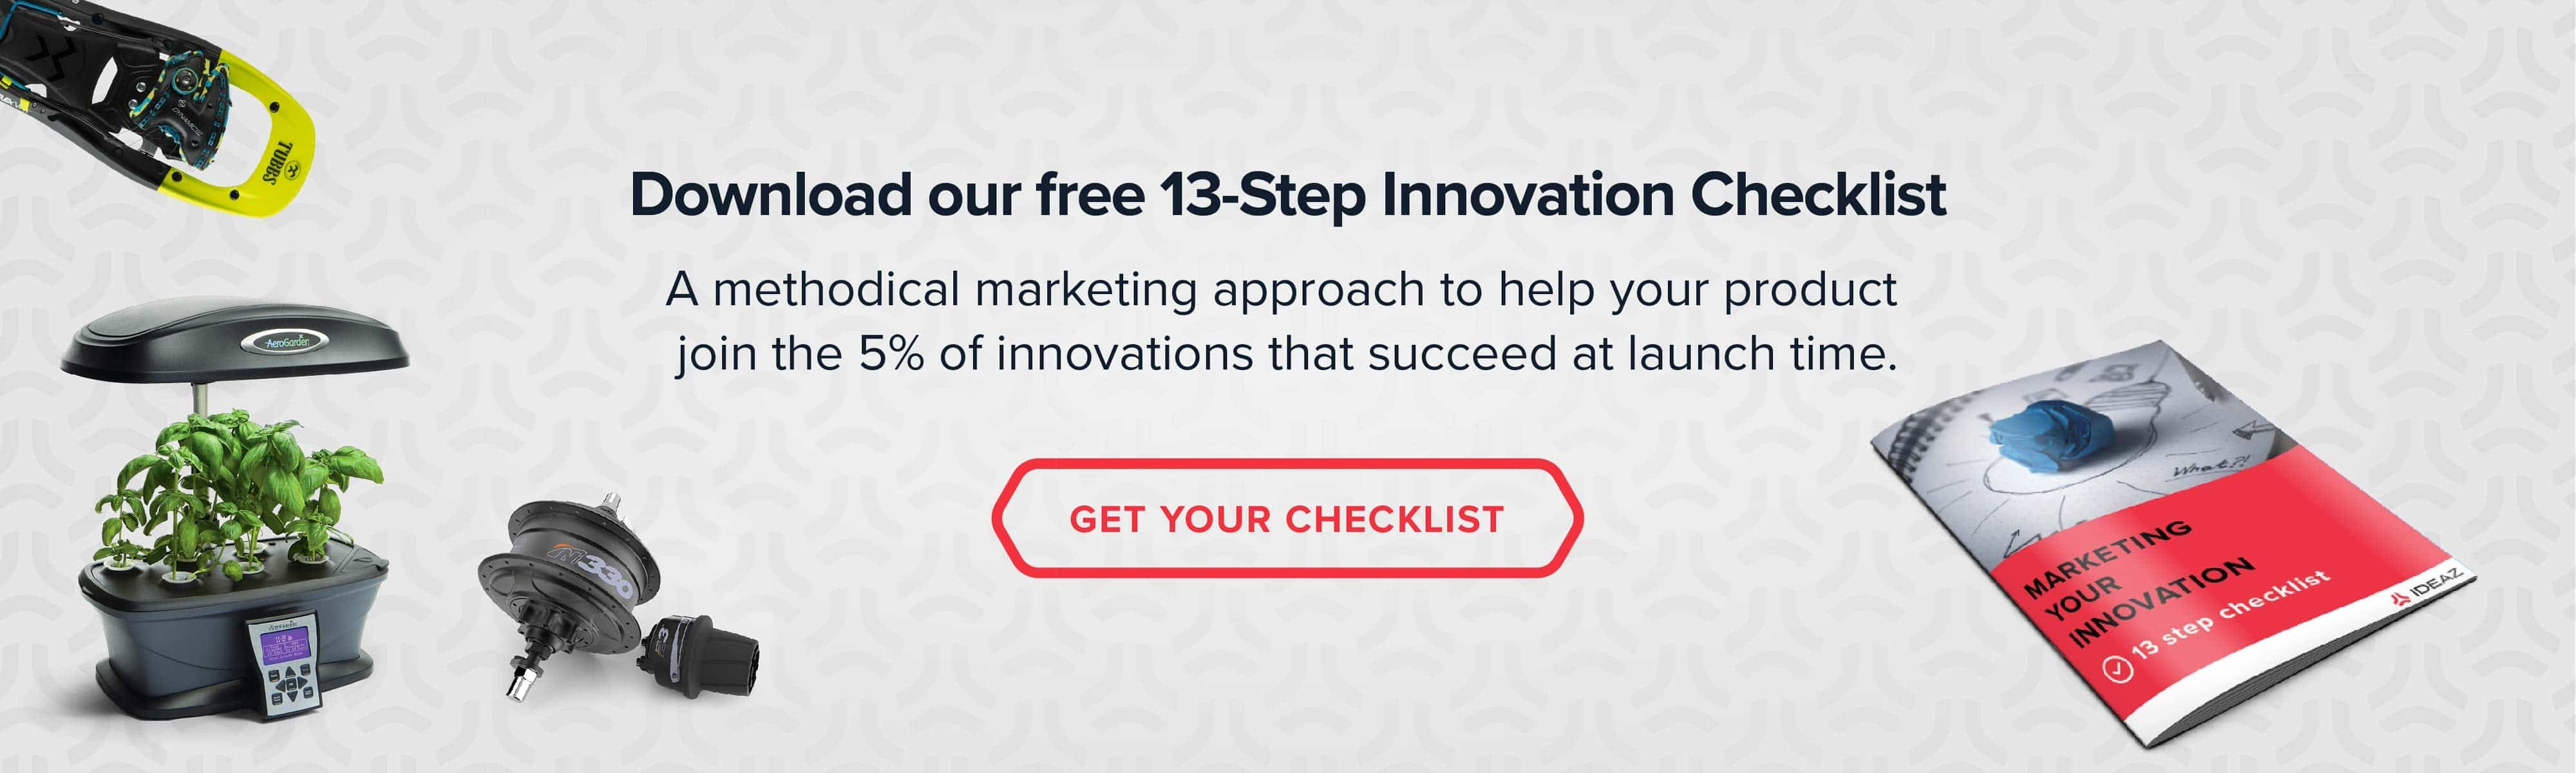 Download your free 13-Step Innovation Checklist